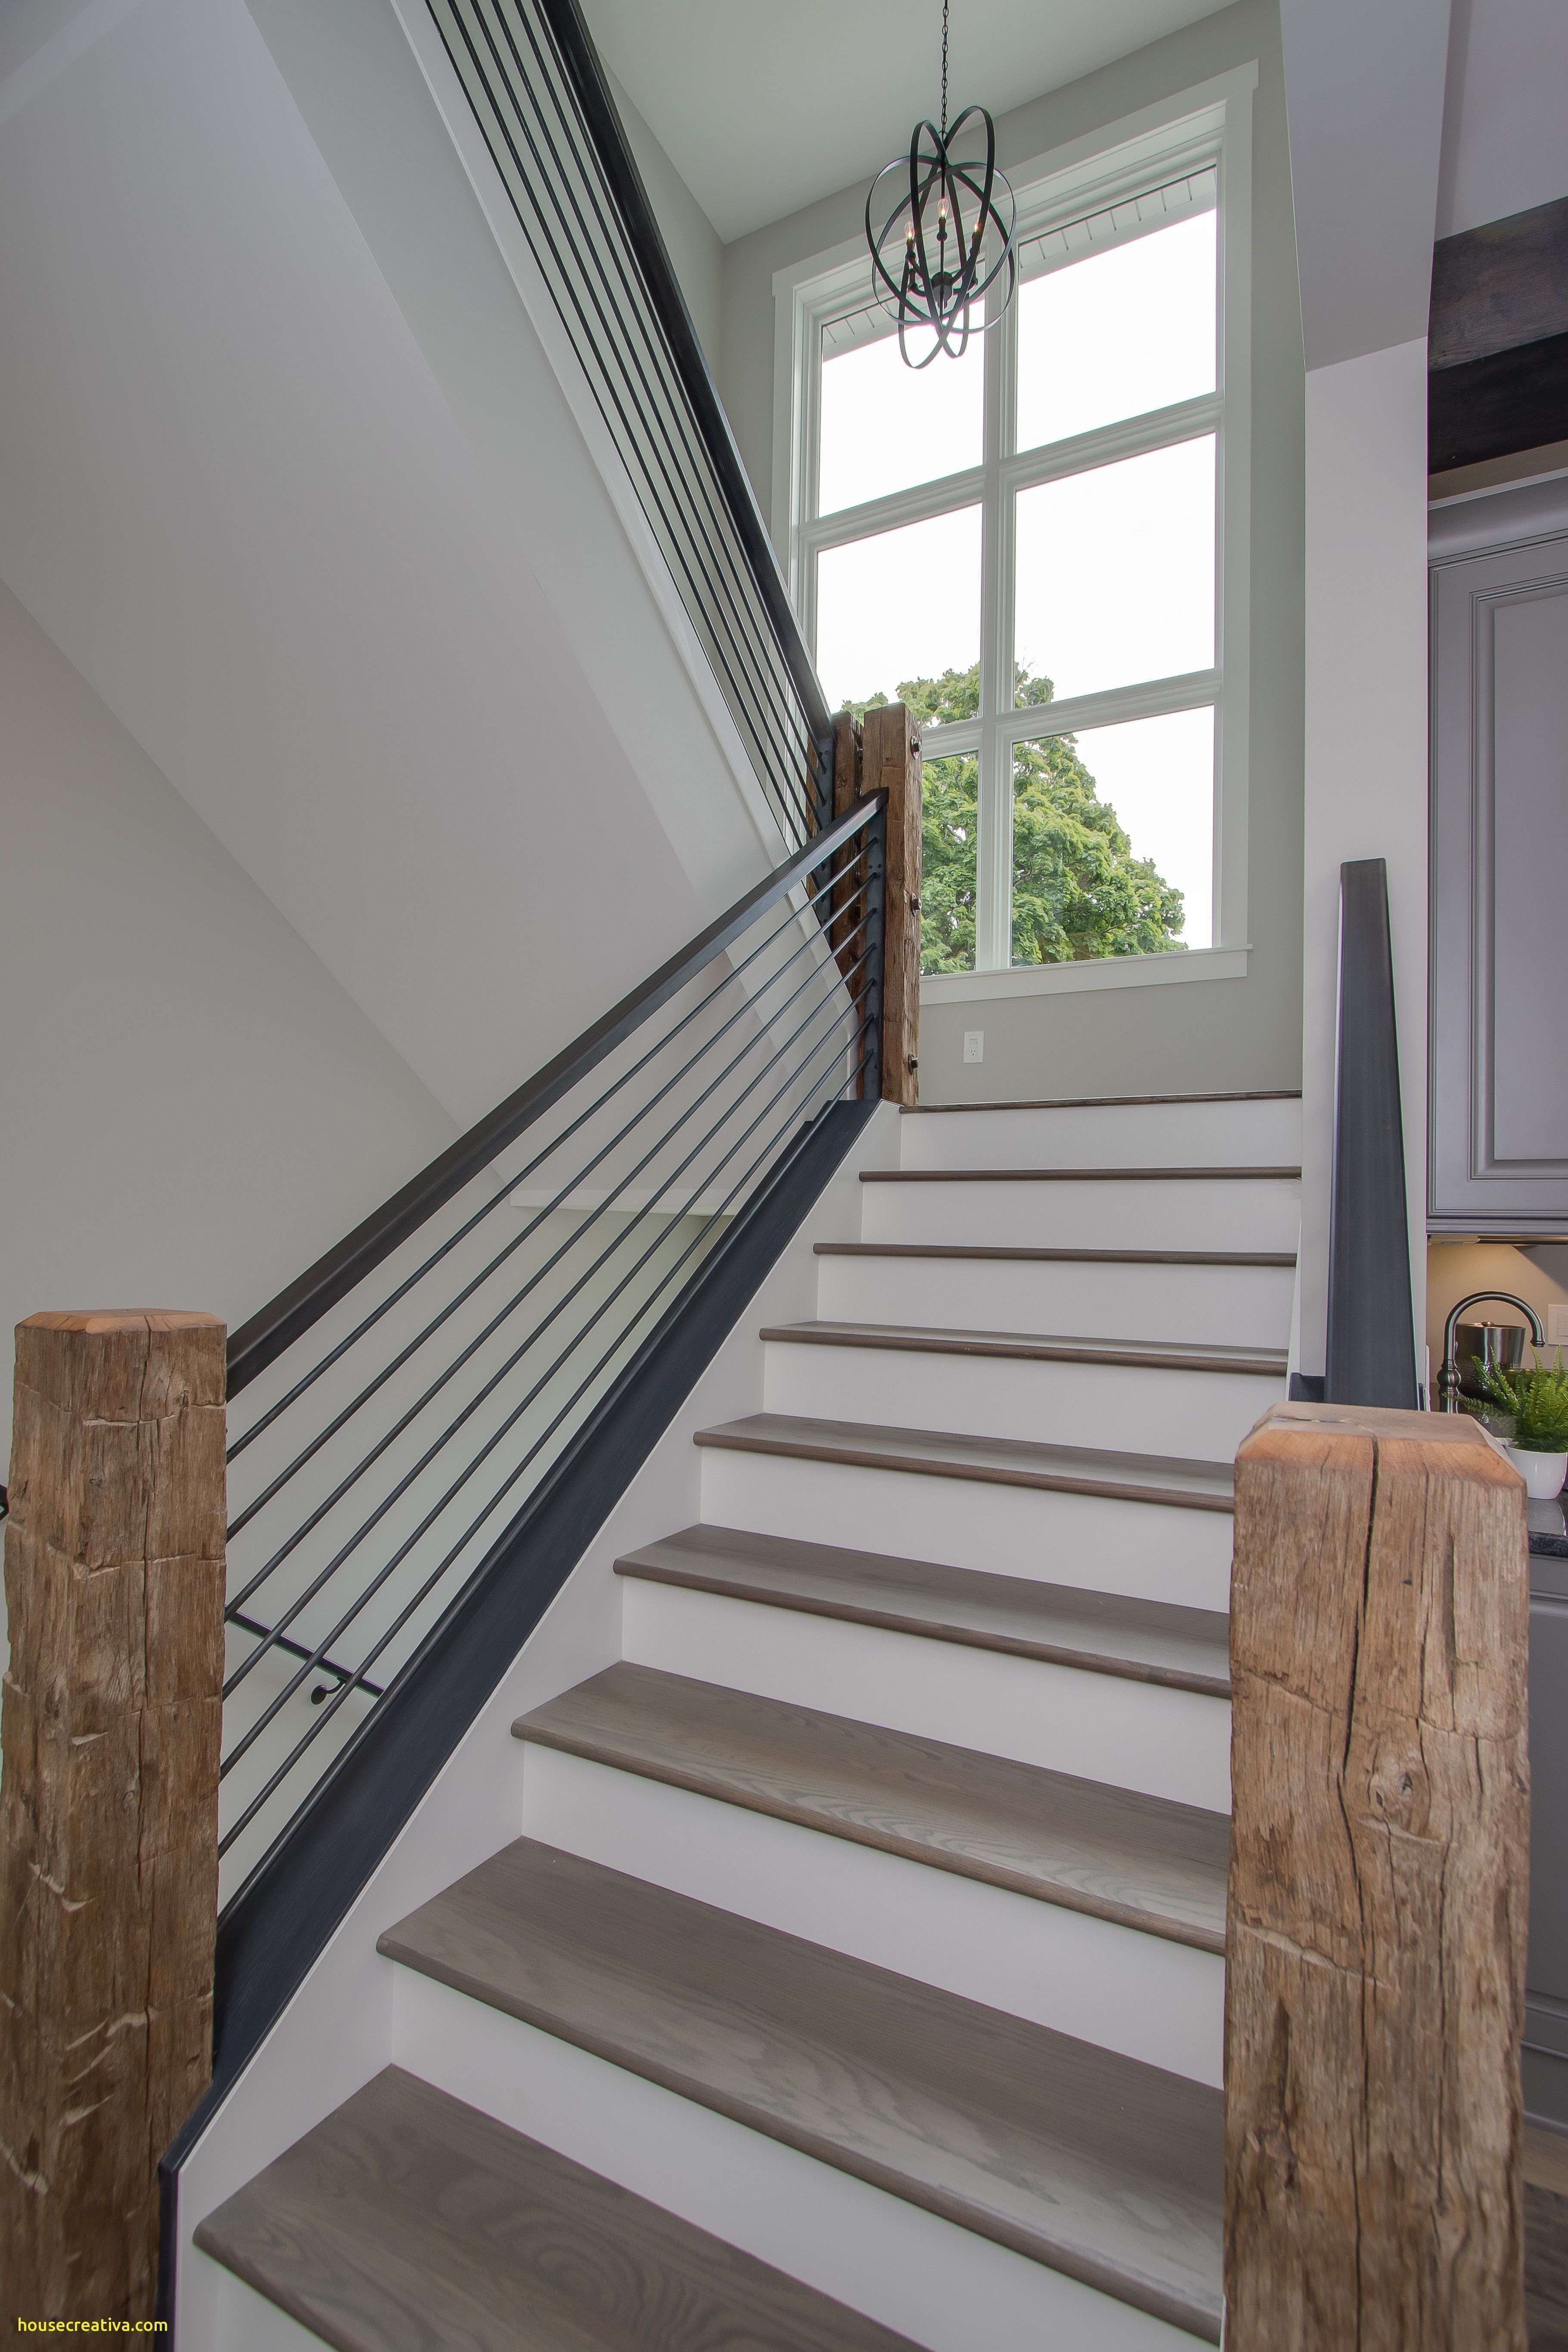 Best Of Horizontal Stair Railing Homedecoration Homedecorations